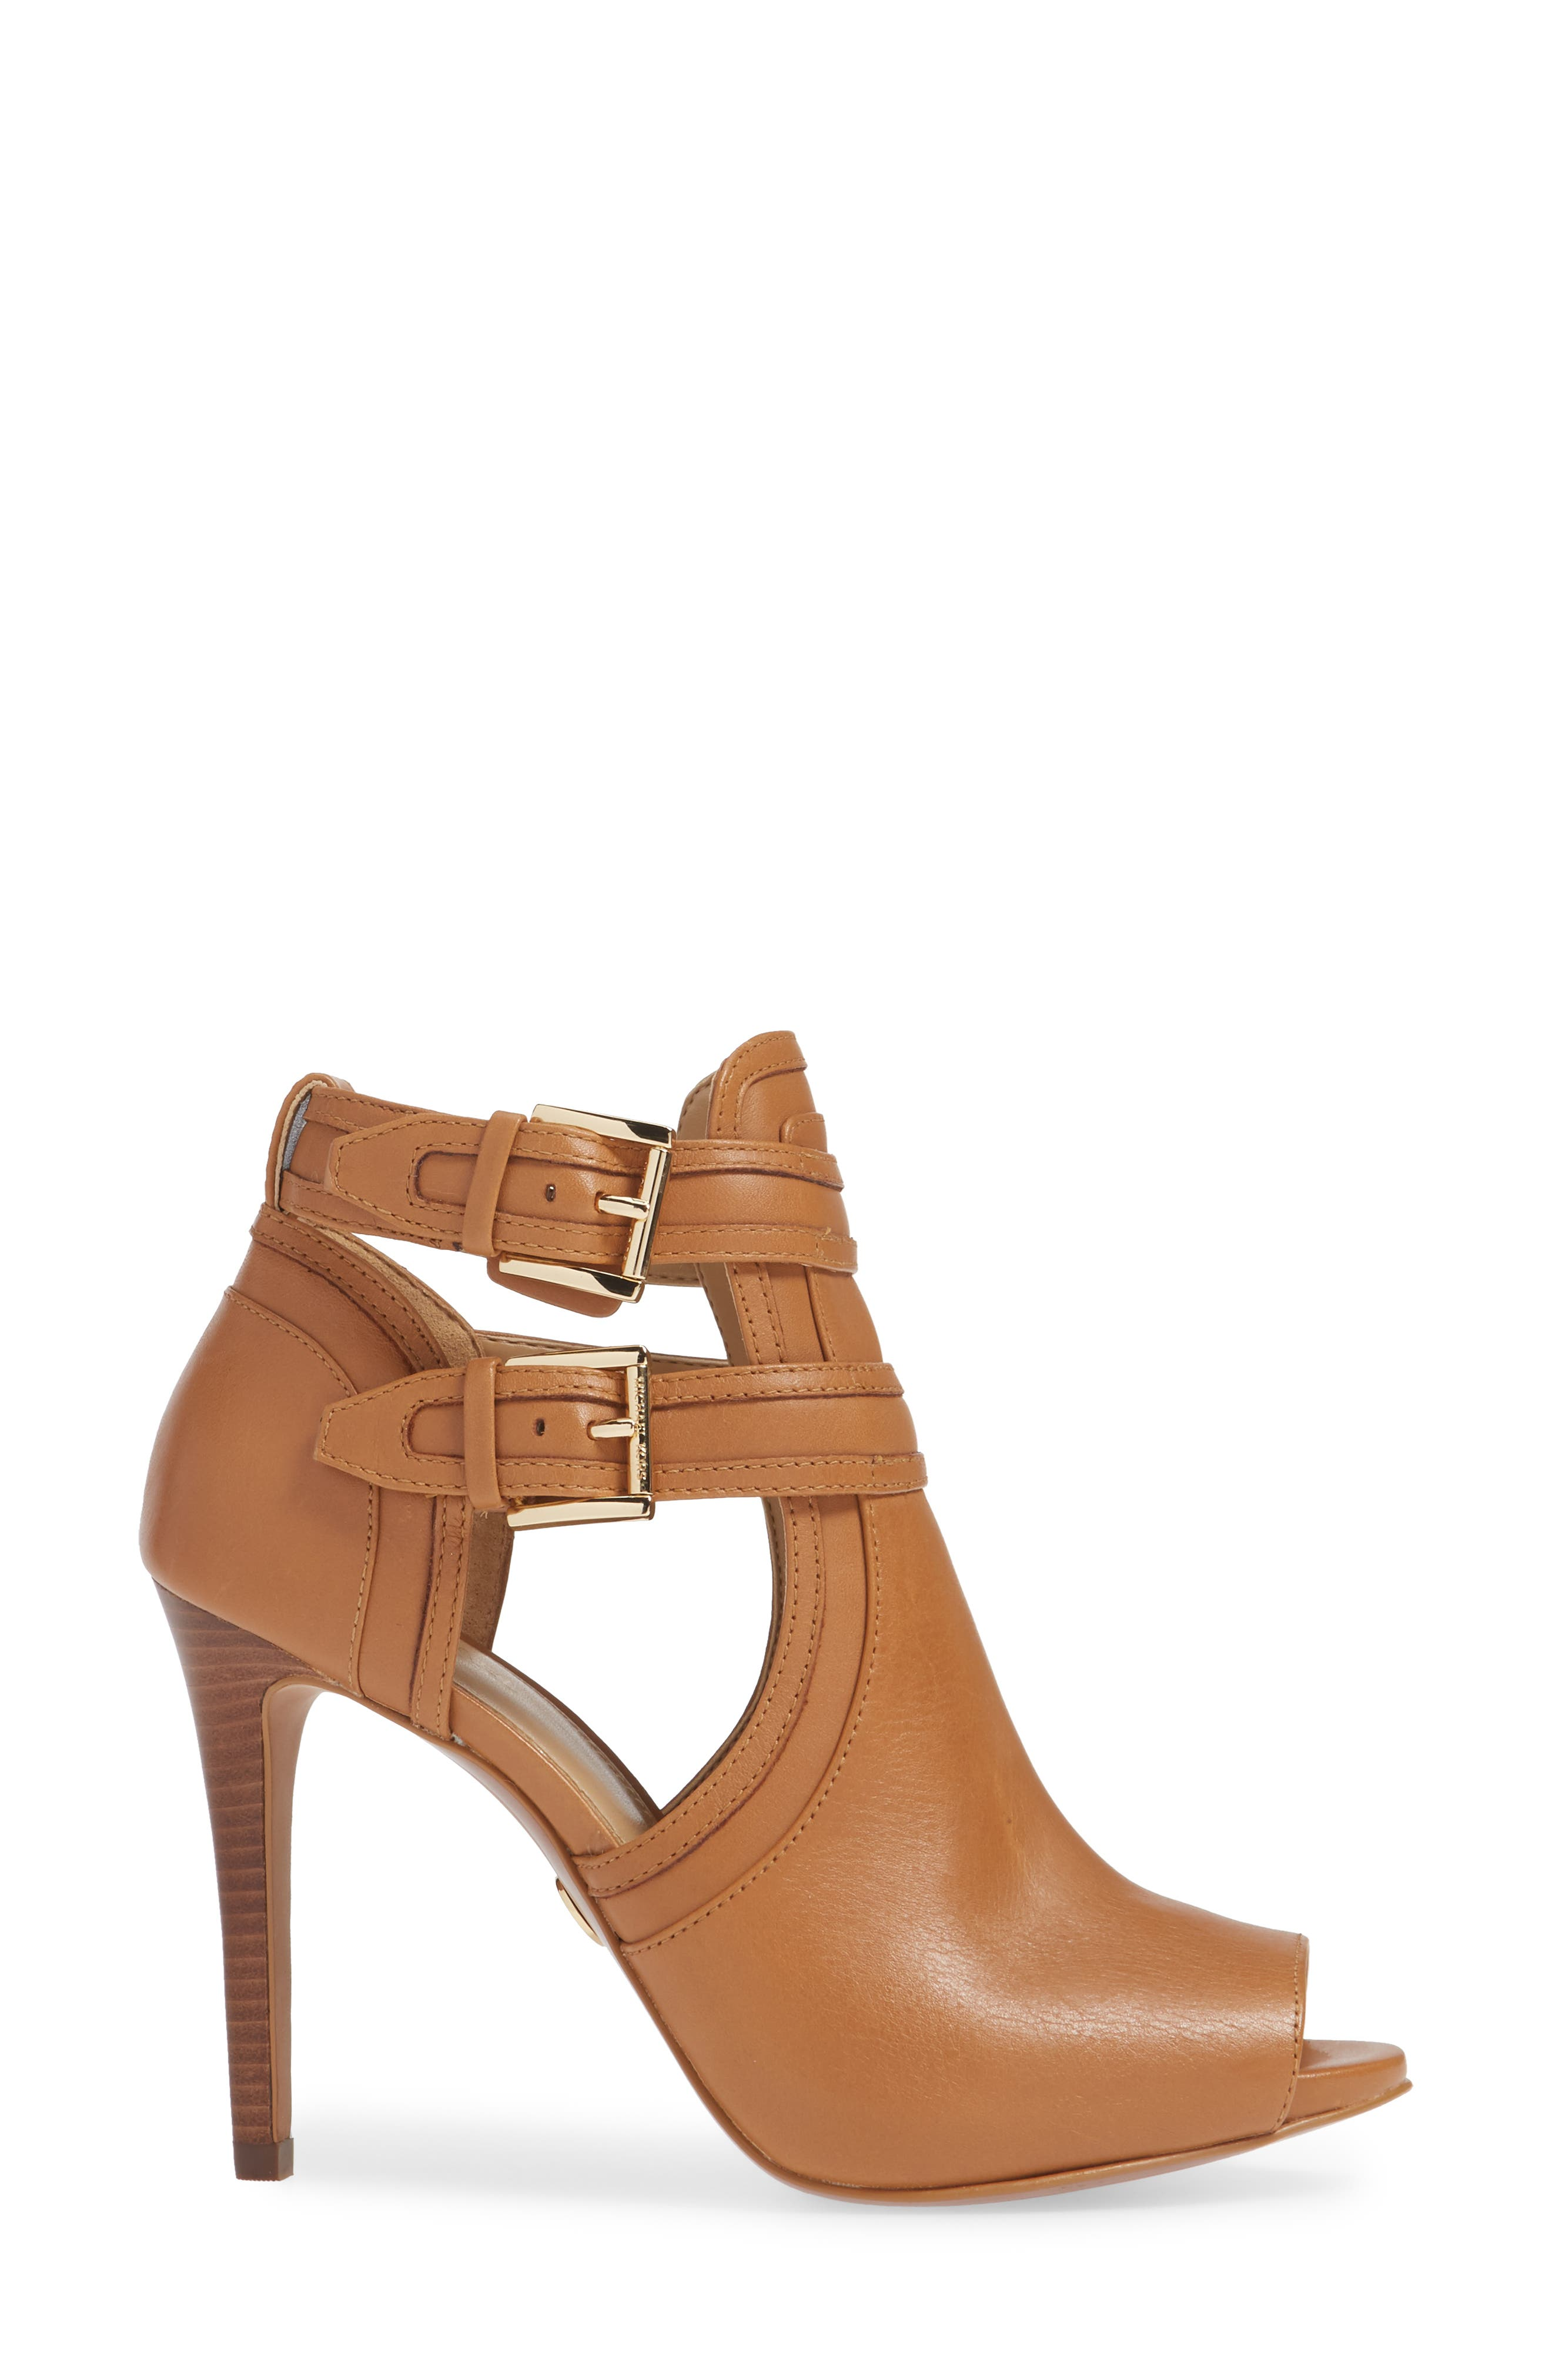 MICHAEL MICHAEL KORS, Blaze Peep Toe Buckle Bootie, Alternate thumbnail 3, color, ACORN LEATHER